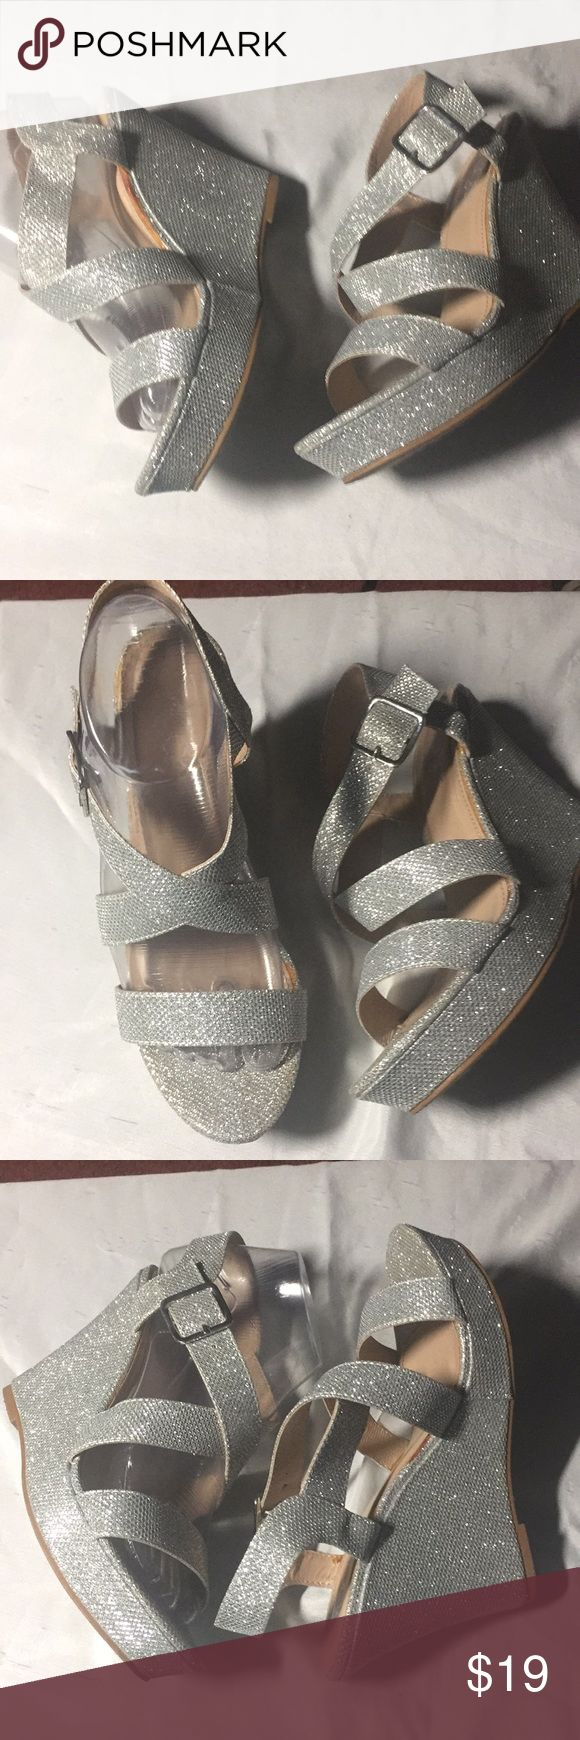 SUGAR Women Silver Wedge Dressy Sandals Beautiful like new impeccable condition only worn once silver wedge sandals.  Size 7 1/2 Medium SUGAR Shoes Wedges